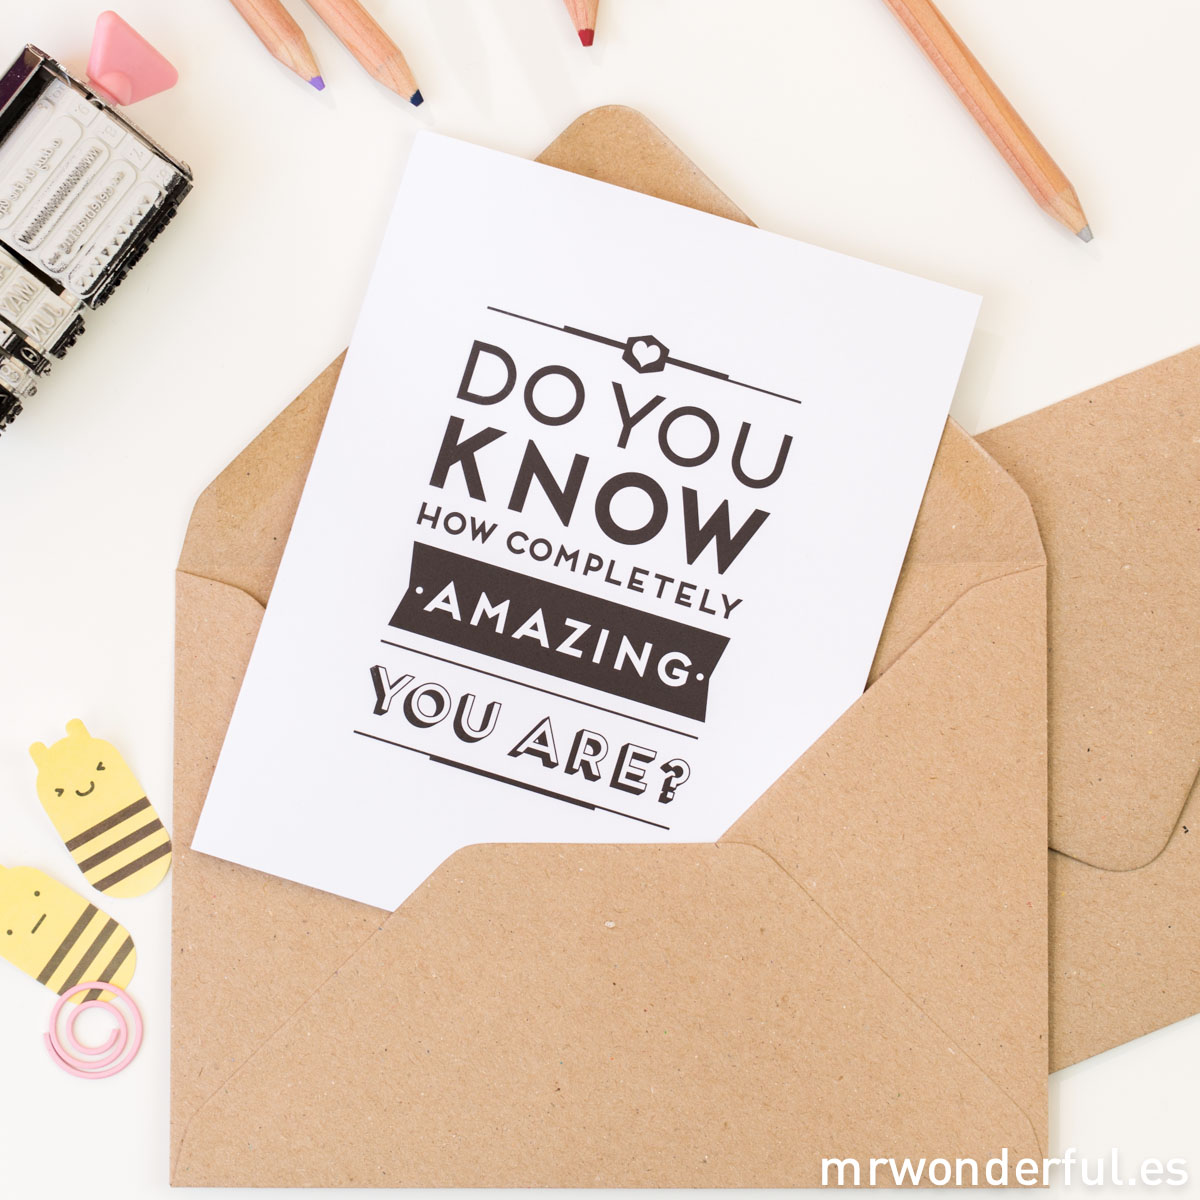 mrwonderful_felicitacion-13_pack-5-tarjetas-relieve_do-you-know-amazing-you-ENG-14